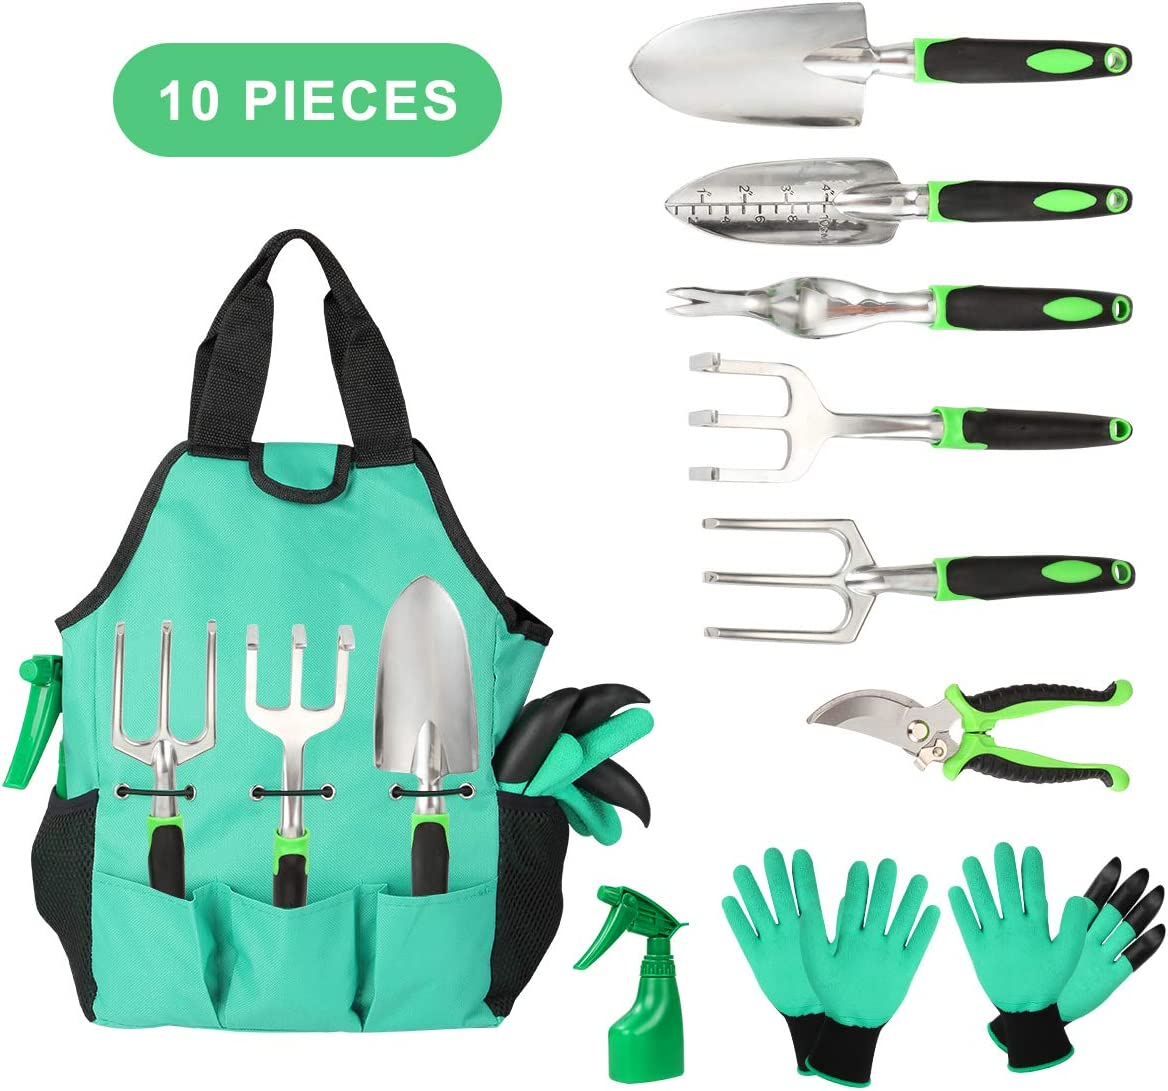 Aladom Garden Tools Set 10 Pieces, Gardening Kit with Heavy Duty Aluminum Hand Tool and Digging Claw Gardening Gloves for Men Women, Green : Garden & Outdoor